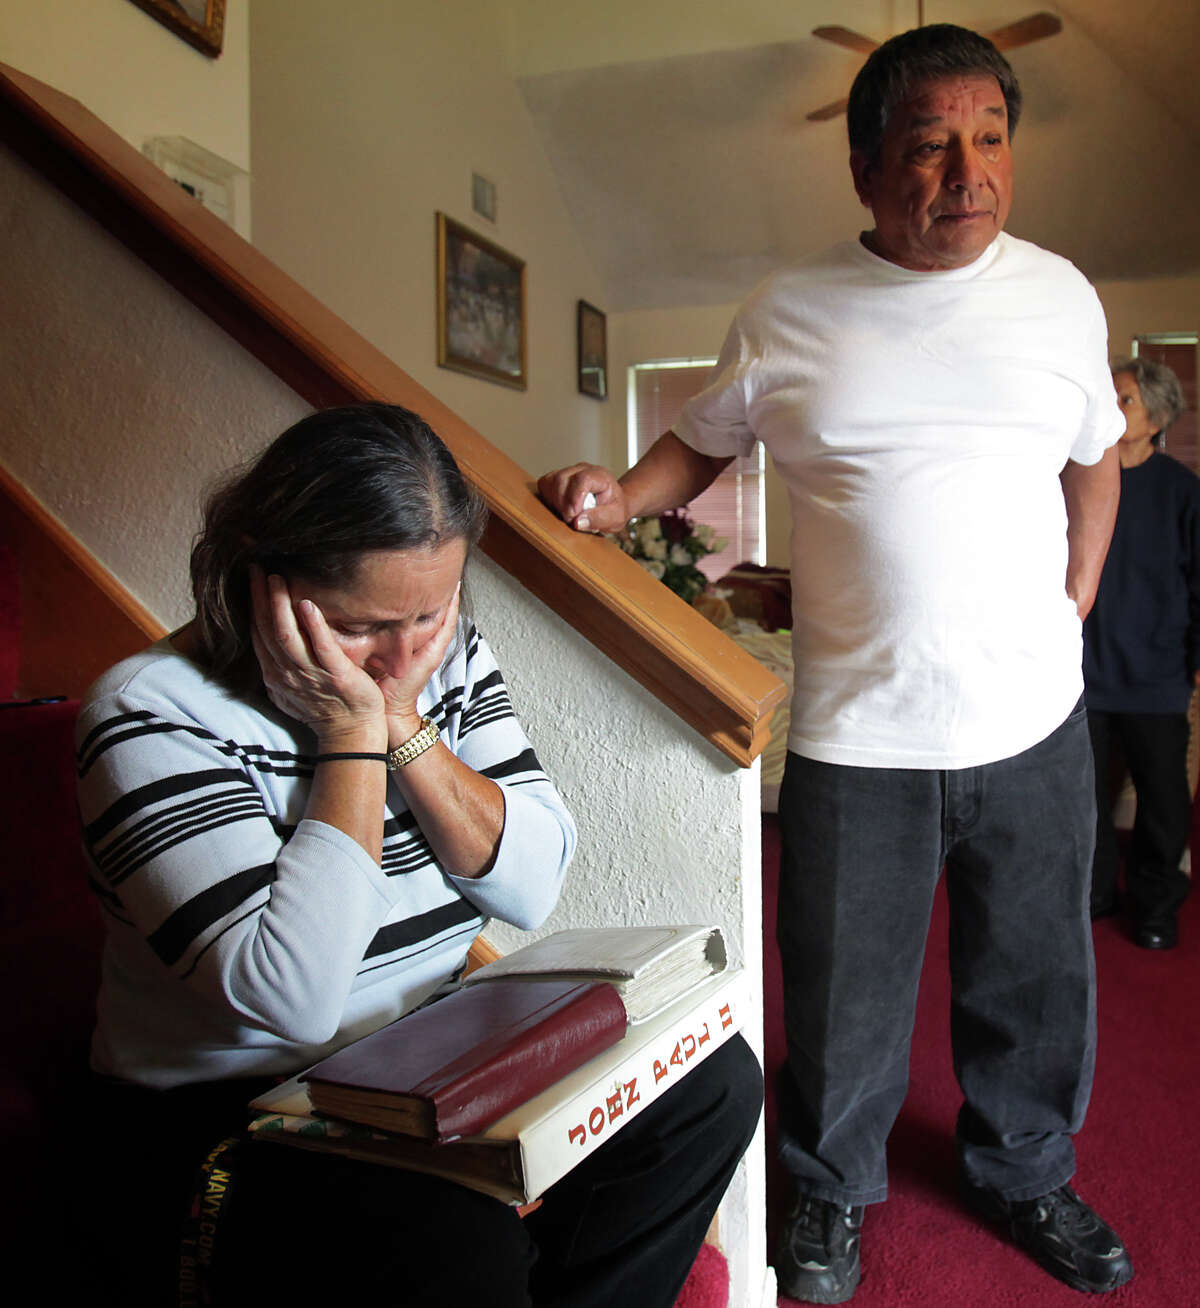 Maria Beltran, left, grieves for her son Jose Beltran, 31, and her grandson Eli Beltran, 3, who were killed after they were hit by a car, walking along Foster Rd. near I-10. Ricardo Espinoza, Jose's step father, is at right. Friday, Nov. 30, 2012.